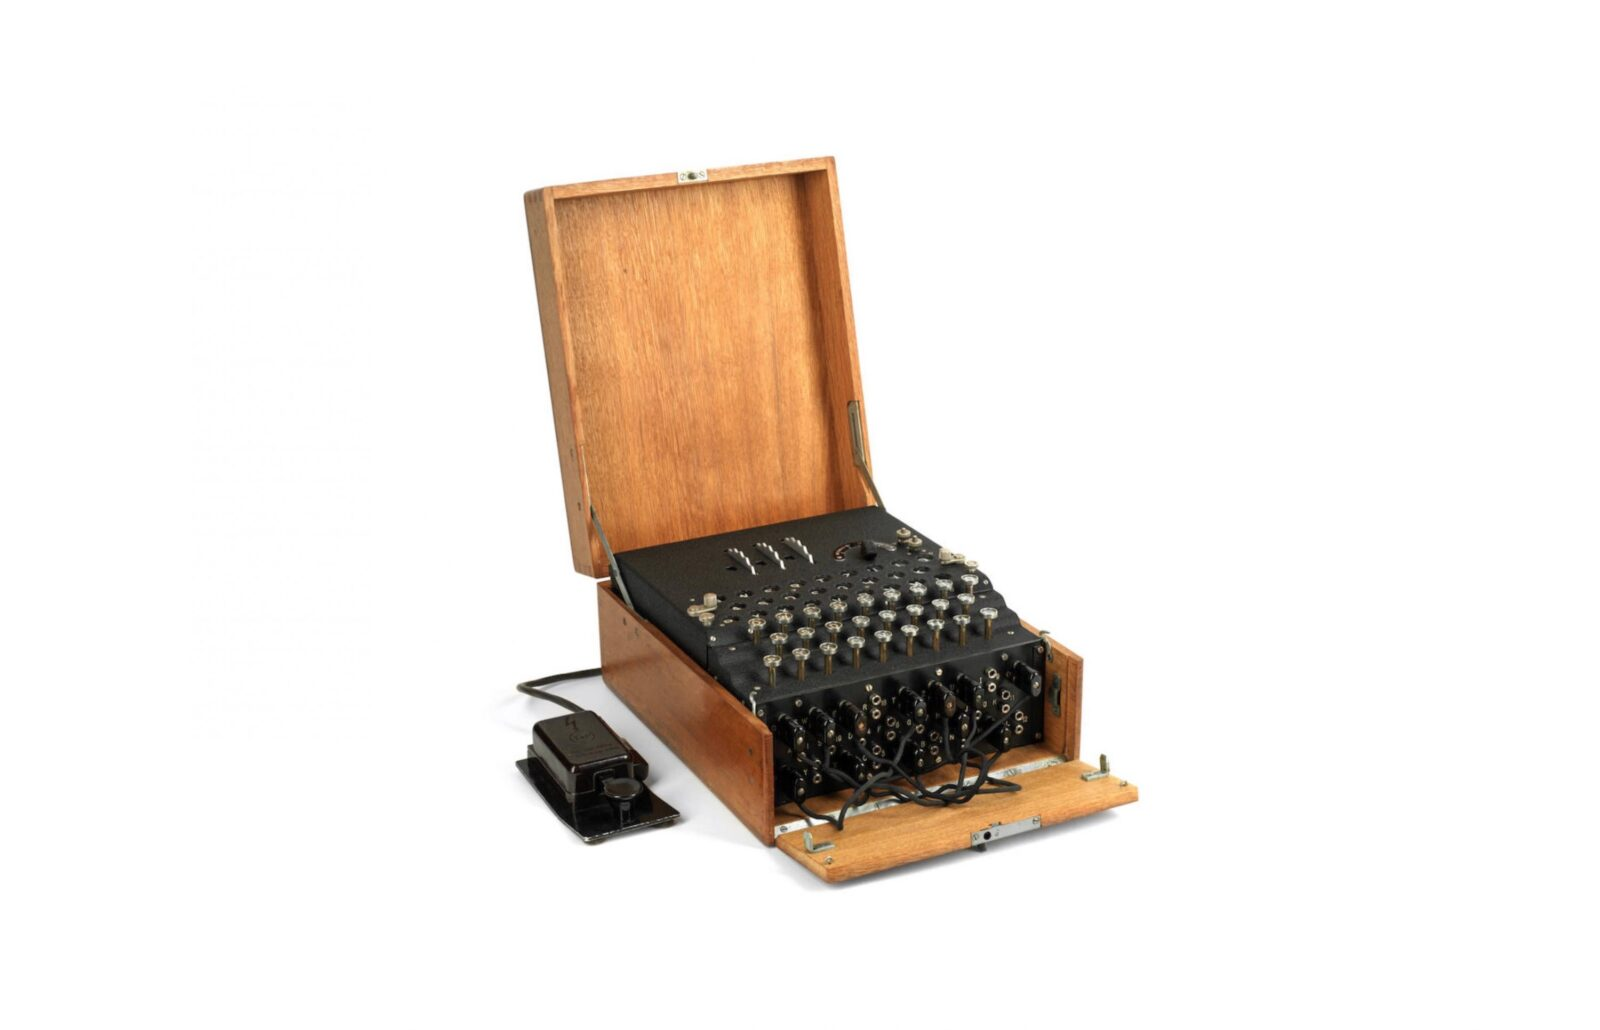 Model 1 Enigma cipher machine 1600x1030 - 1933 Model 1 Enigma Cipher Machine